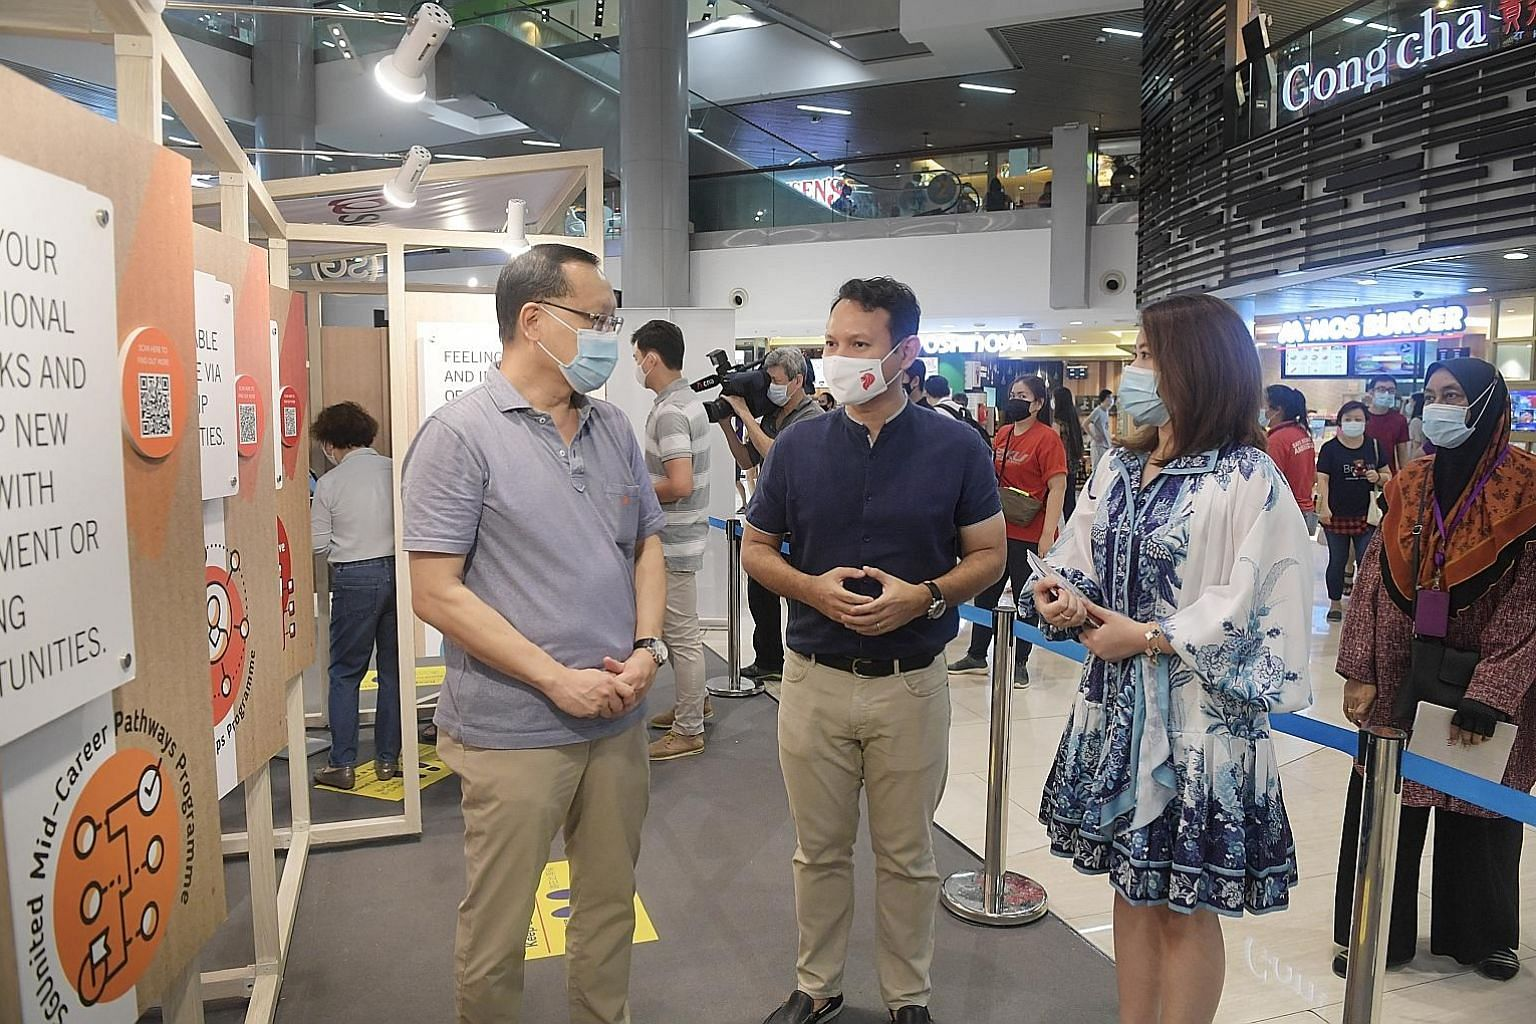 Senior Minister of State for Manpower and Defence Zaqy Mohamad (centre) at the SGUnited Jobs and Skills information kiosk at Causeway Point yesterday, with Workforce Singapore chief executive Tan Choon Shian and principal manager of the corporate mar